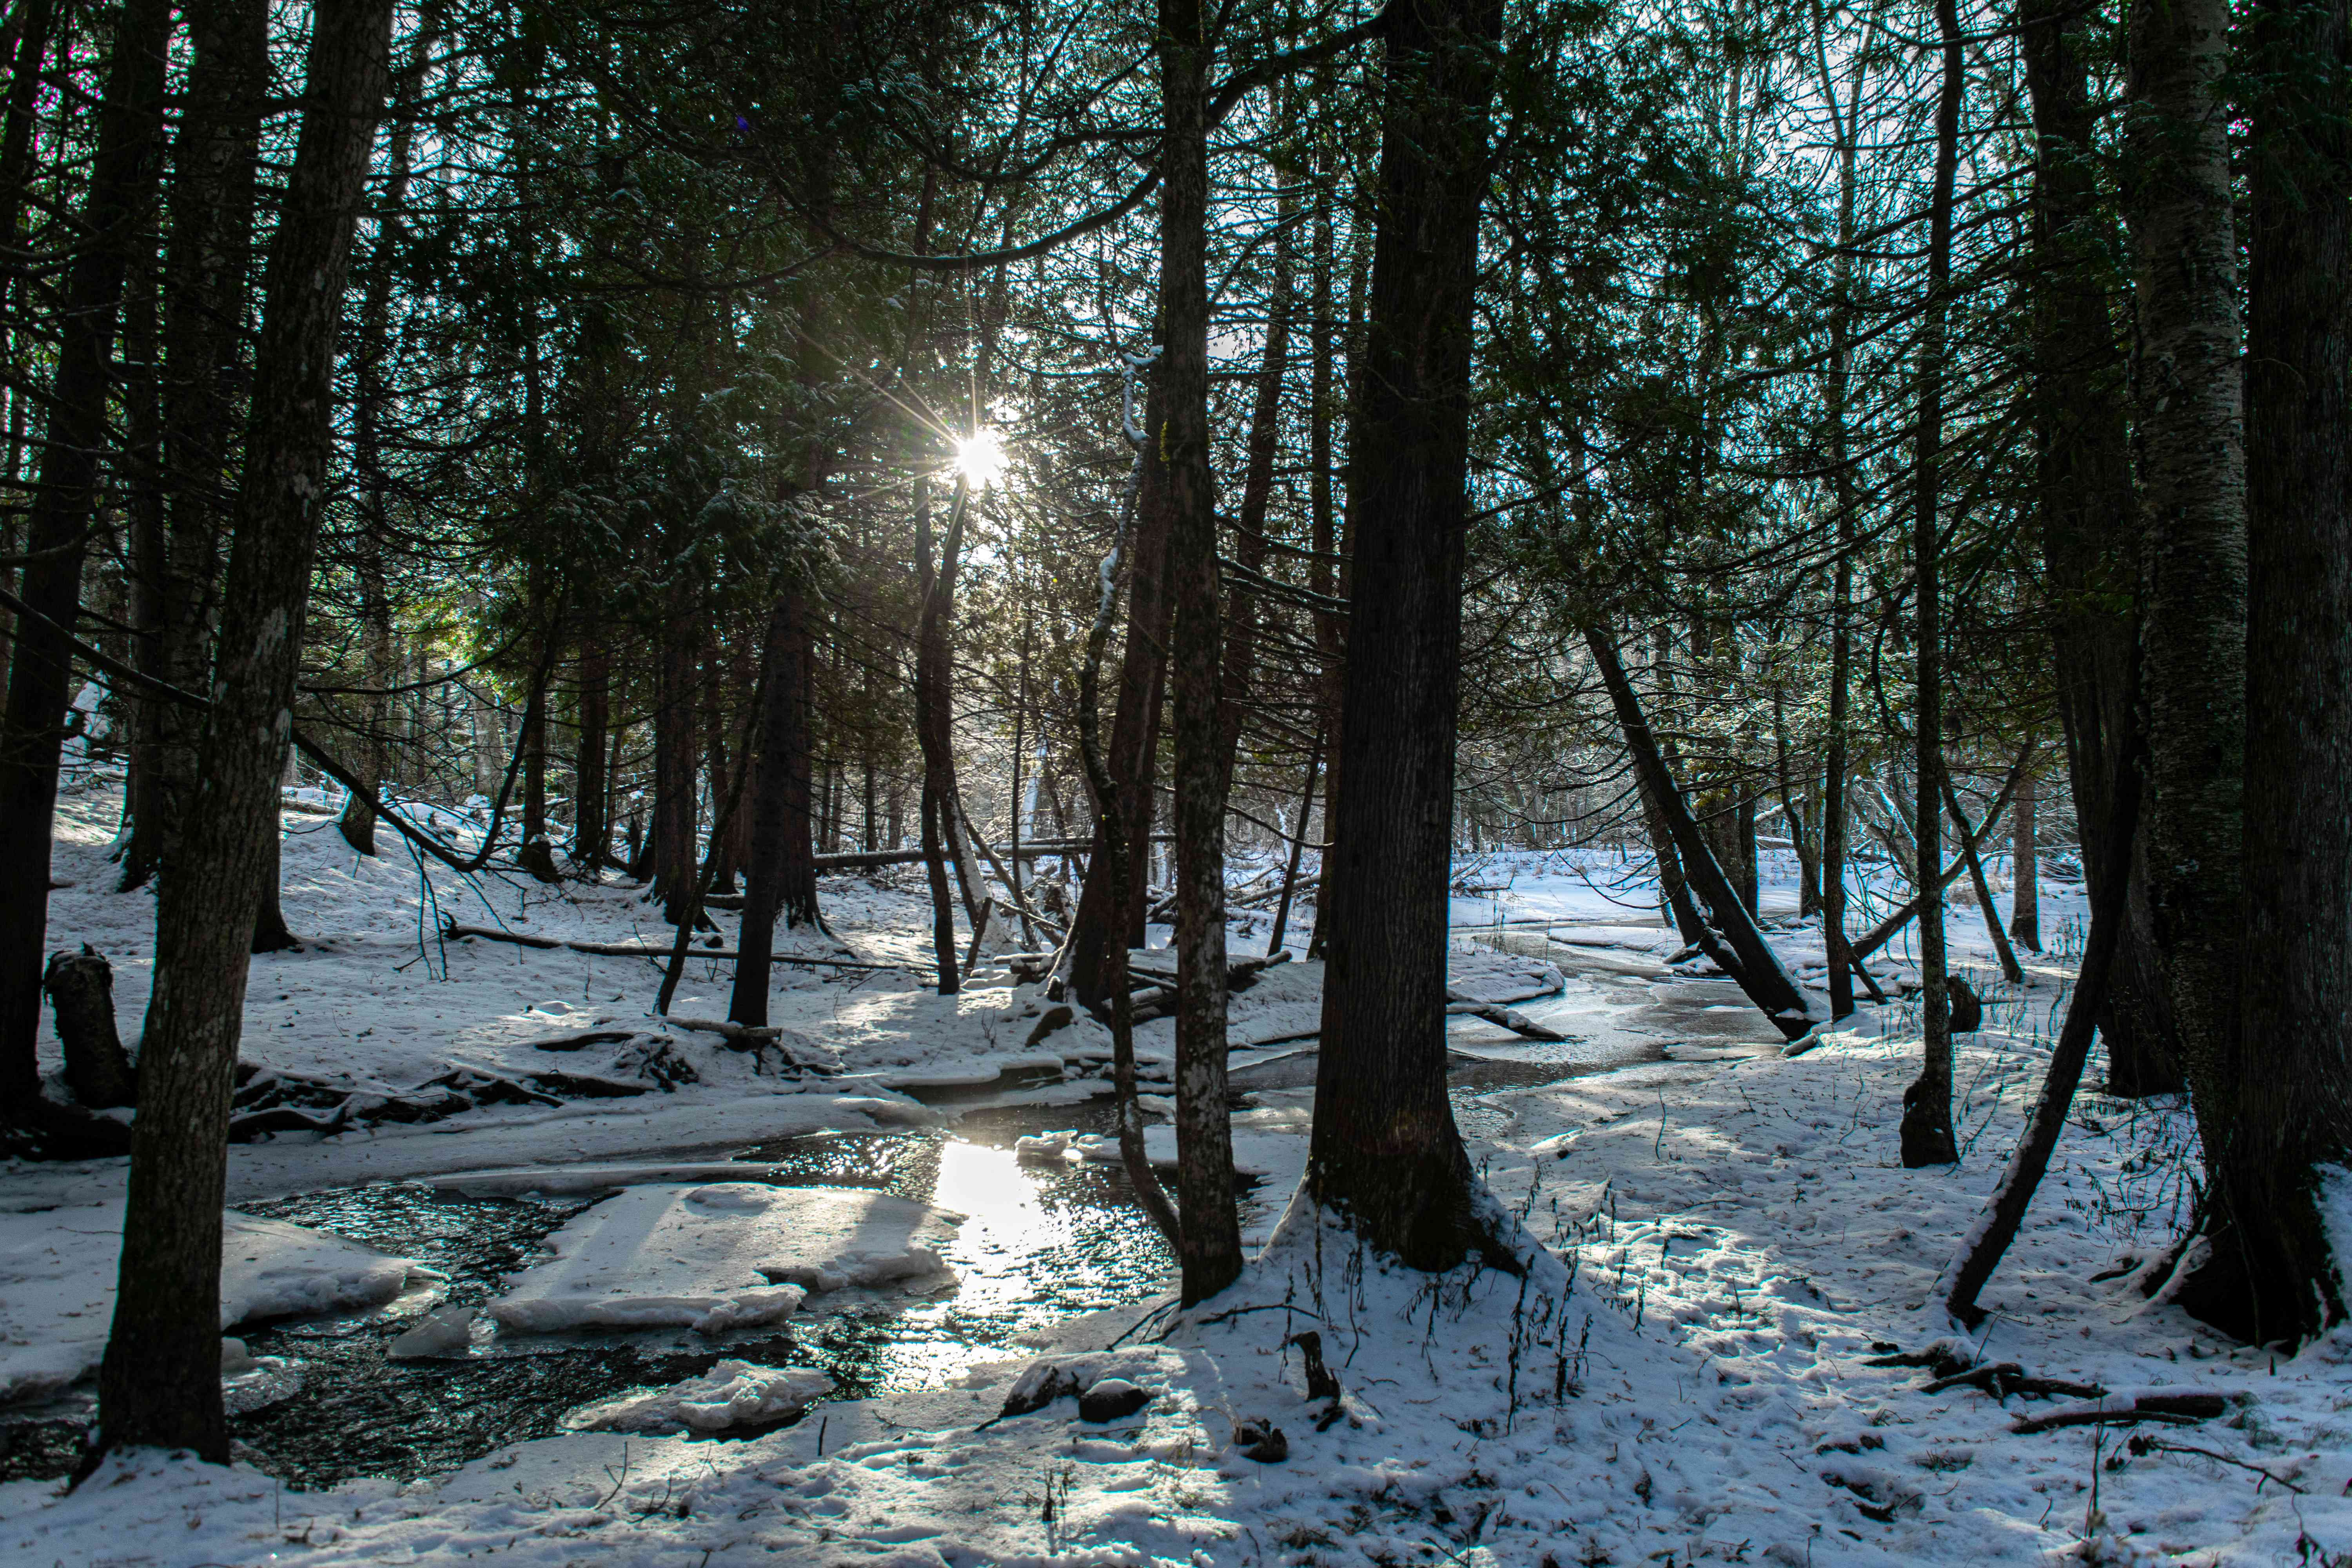 late day sun breaks through trees and snow